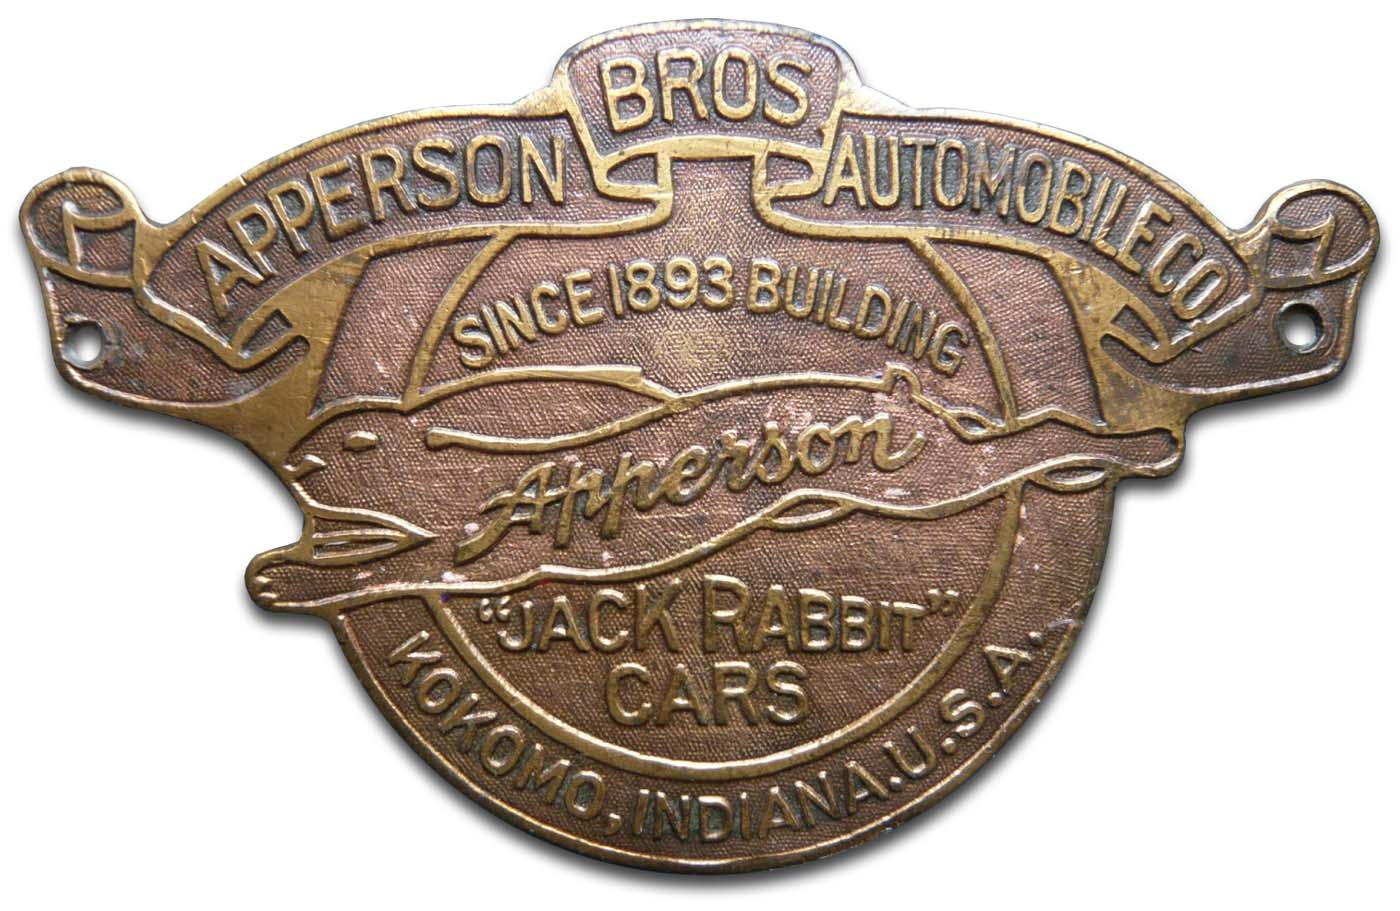 Apperson Brothers Automobile Company (Kokomo, Indiana)(1912)